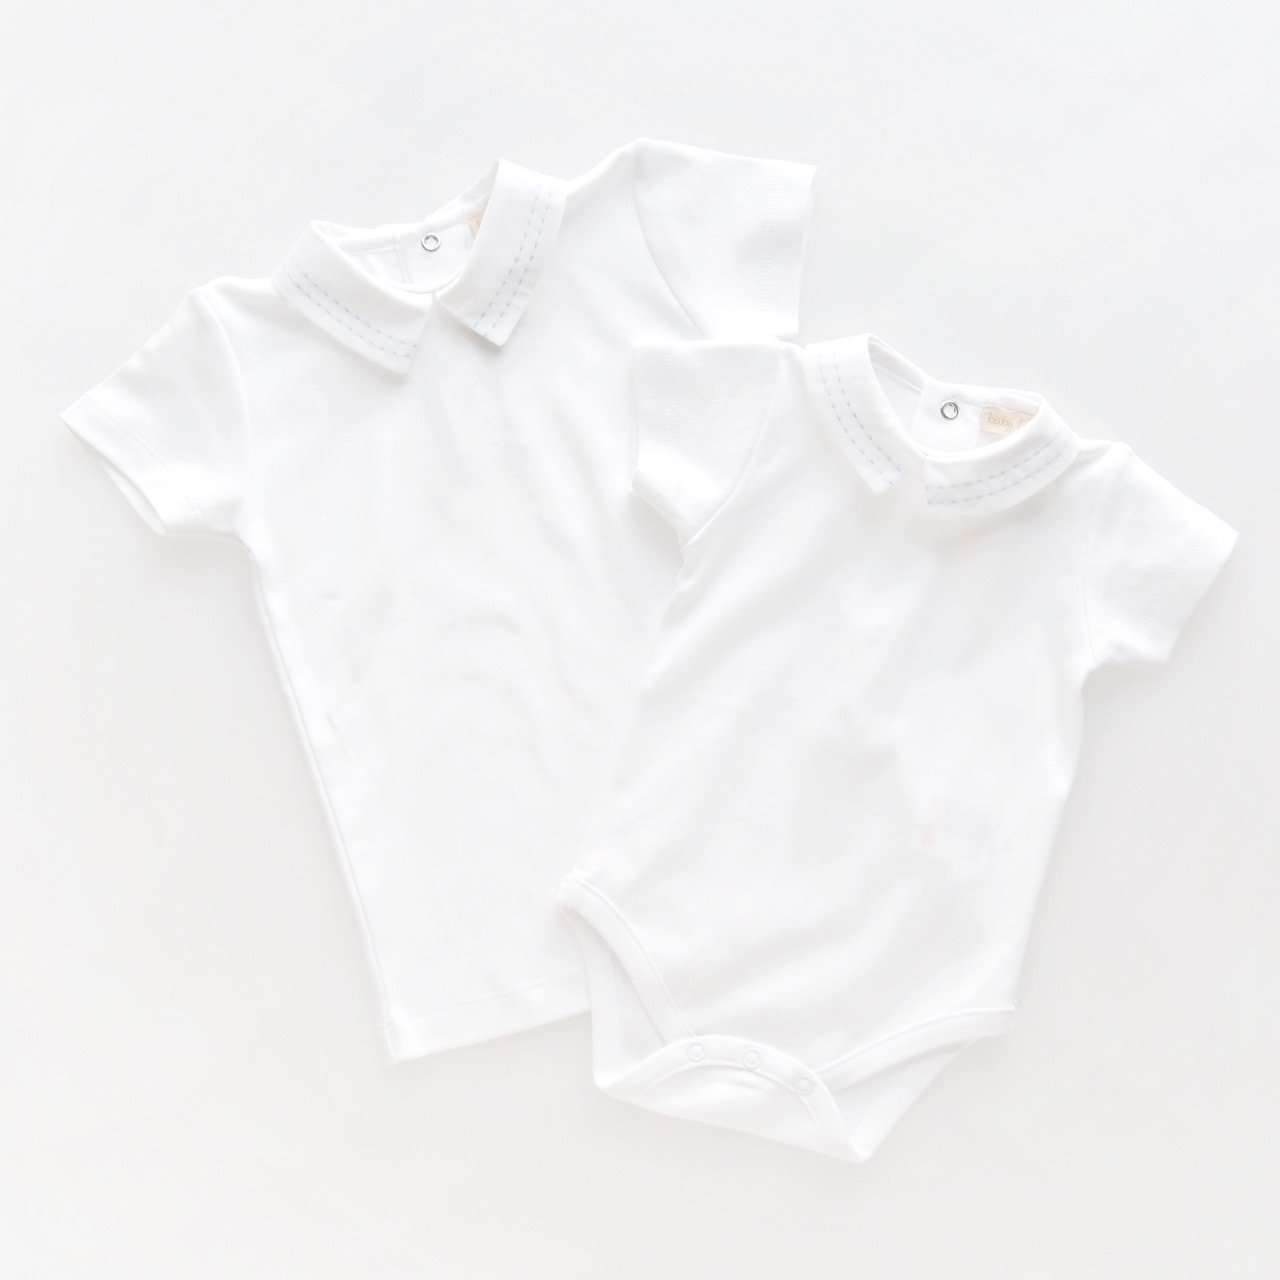 <img class='new_mark_img1' src='https://img.shop-pro.jp/img/new/icons1.gif' style='border:none;display:inline;margin:0px;padding:0px;width:auto;' />baby lai/ Laivicar - Boy stitch T-shirts and body